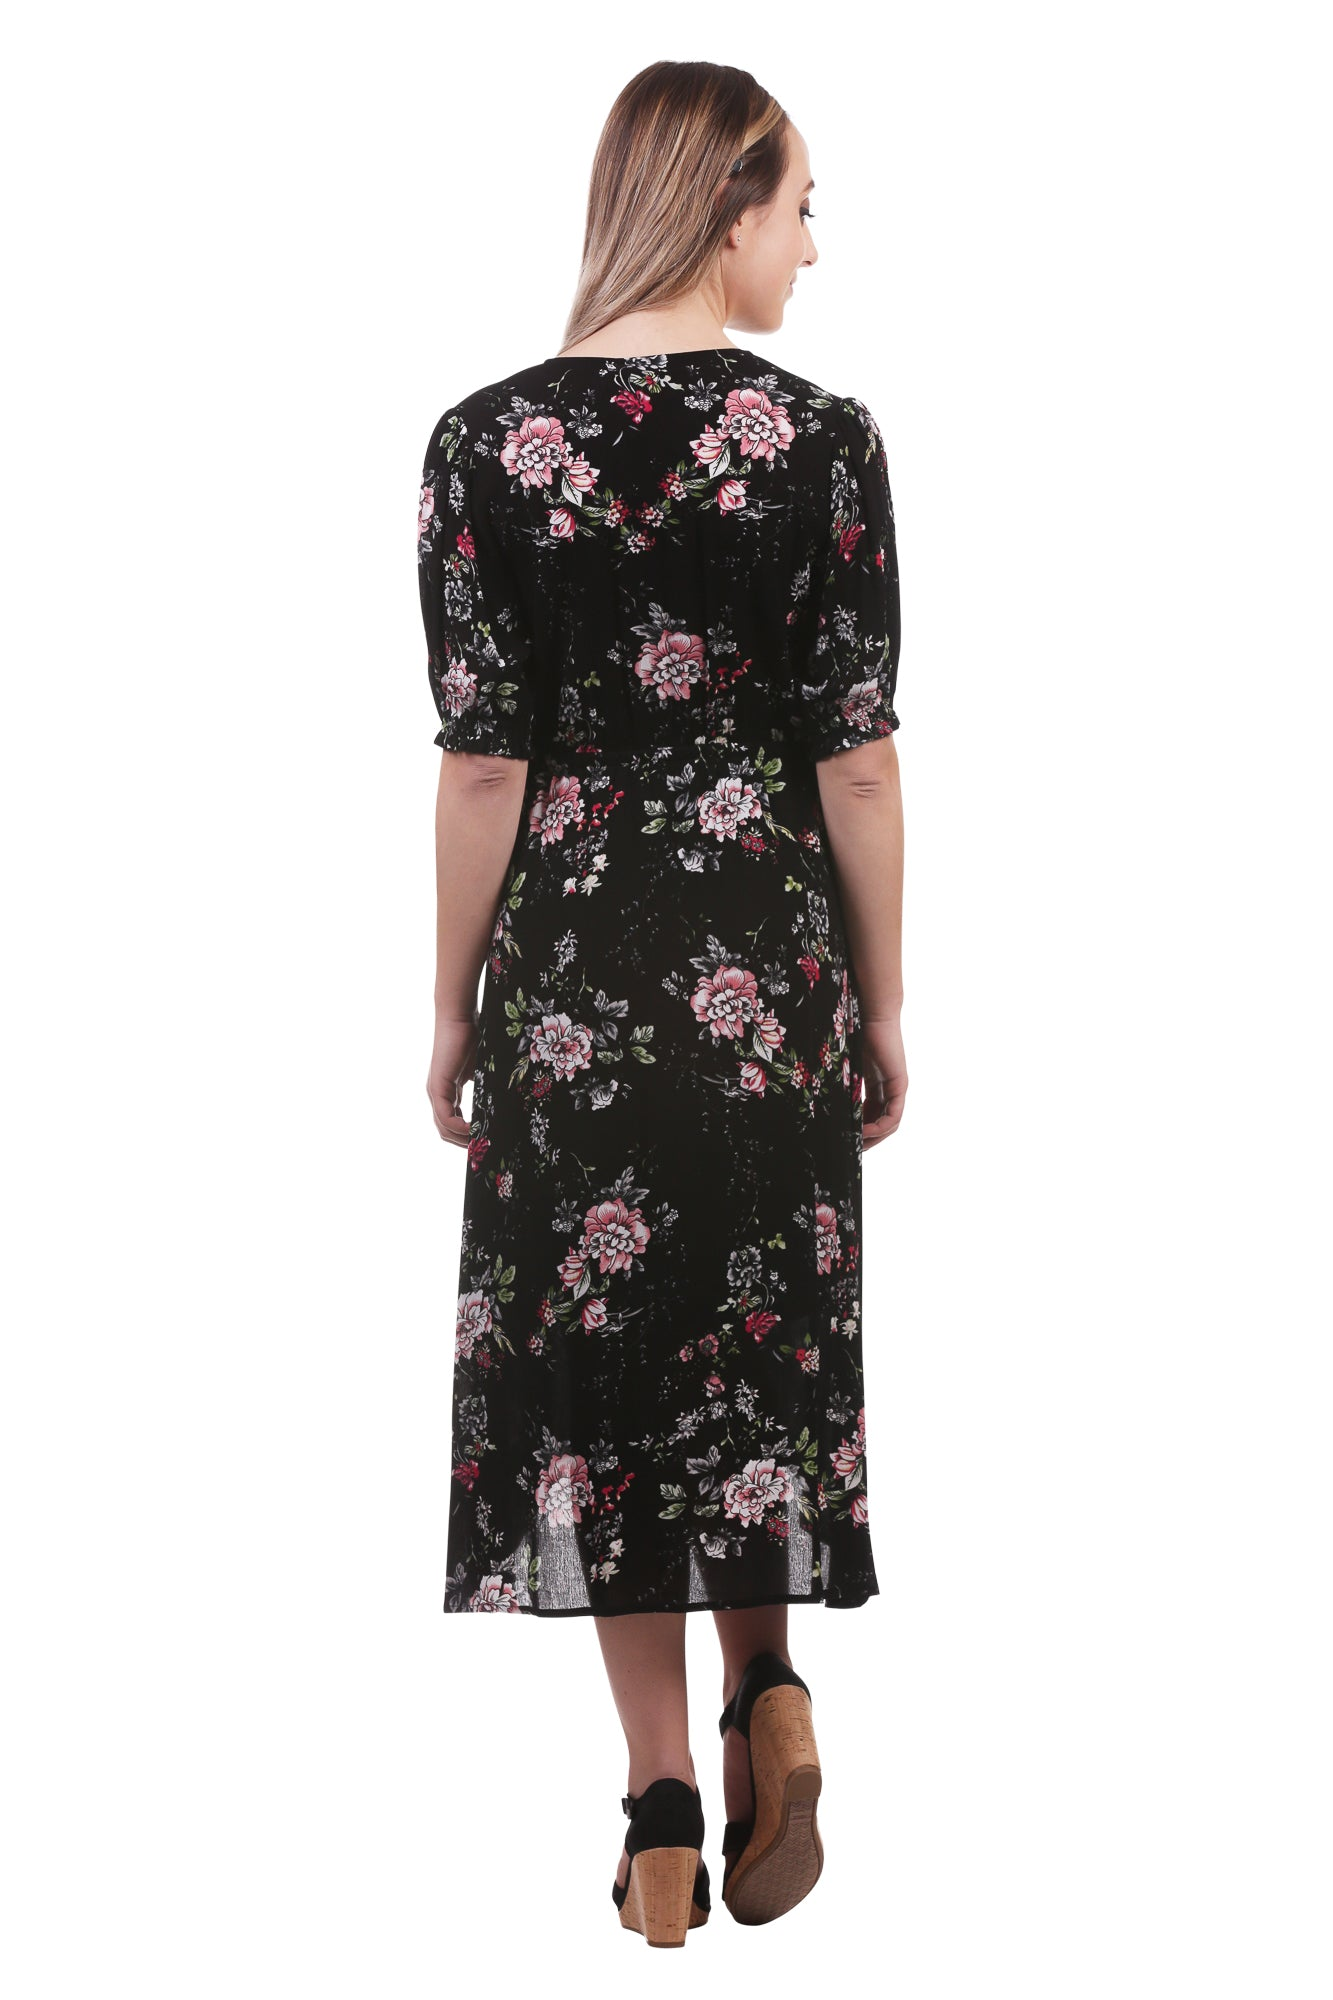 Floral Faux Wrap Dress with Buttons in Black